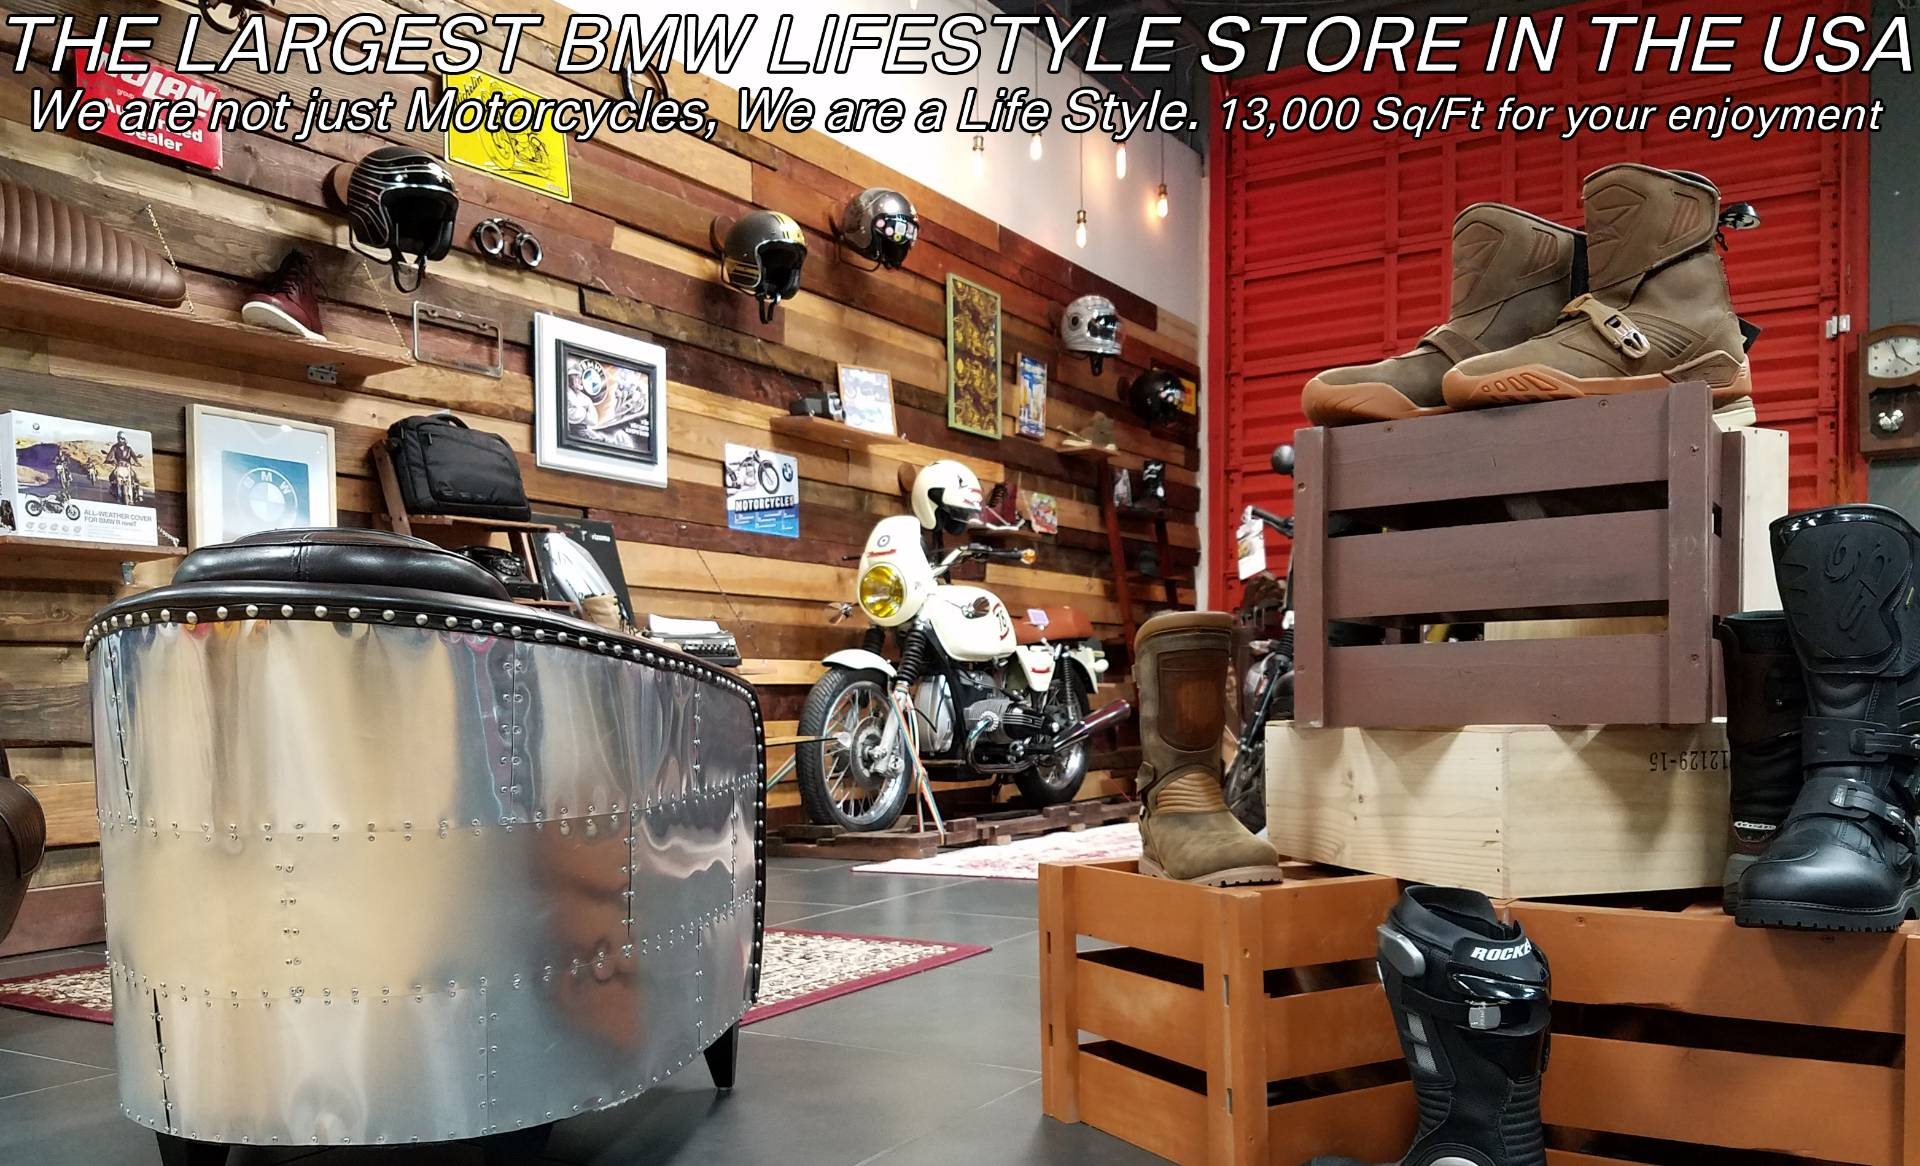 Used 2017 BMW R nine T For Sale, Pre owned BMW R nineT For Sale, BMW Motorcycle RnineT, BMW Motorcycles of Miami, Motorcycles of Miami, Motorcycles Miami - Photo 38